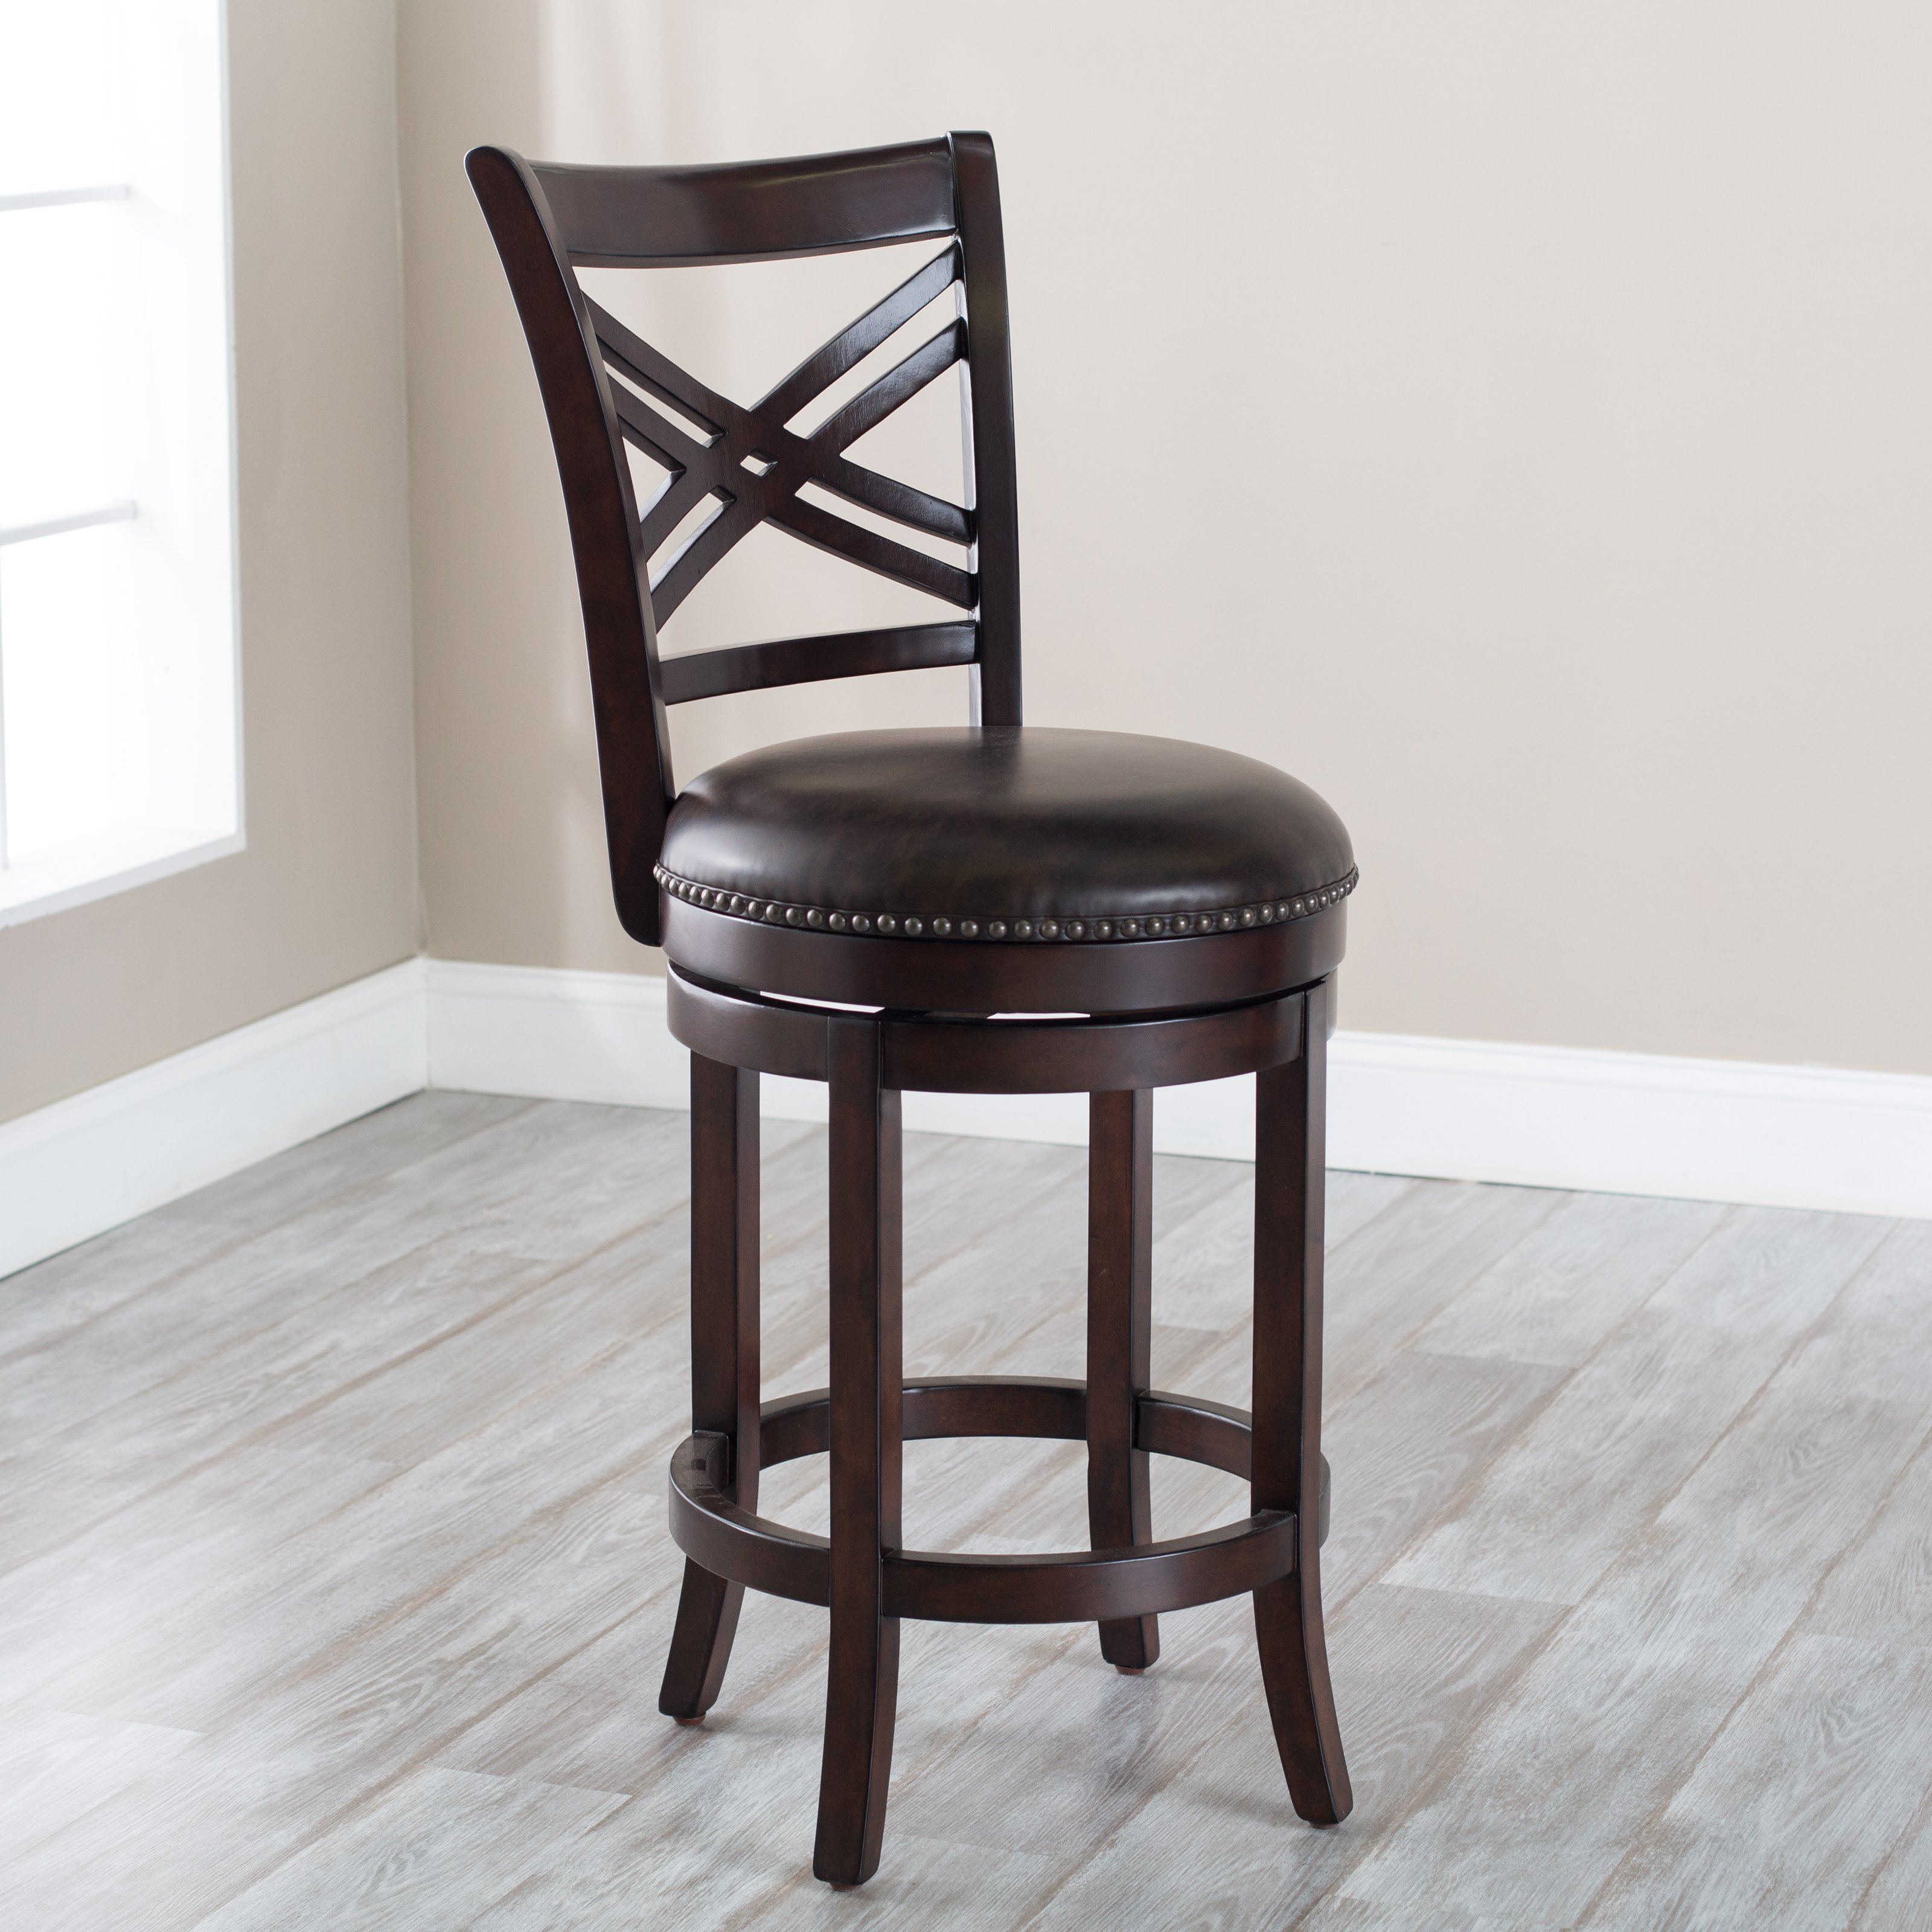 Belham Living Landon Swivel Counter Stool with Nailheads